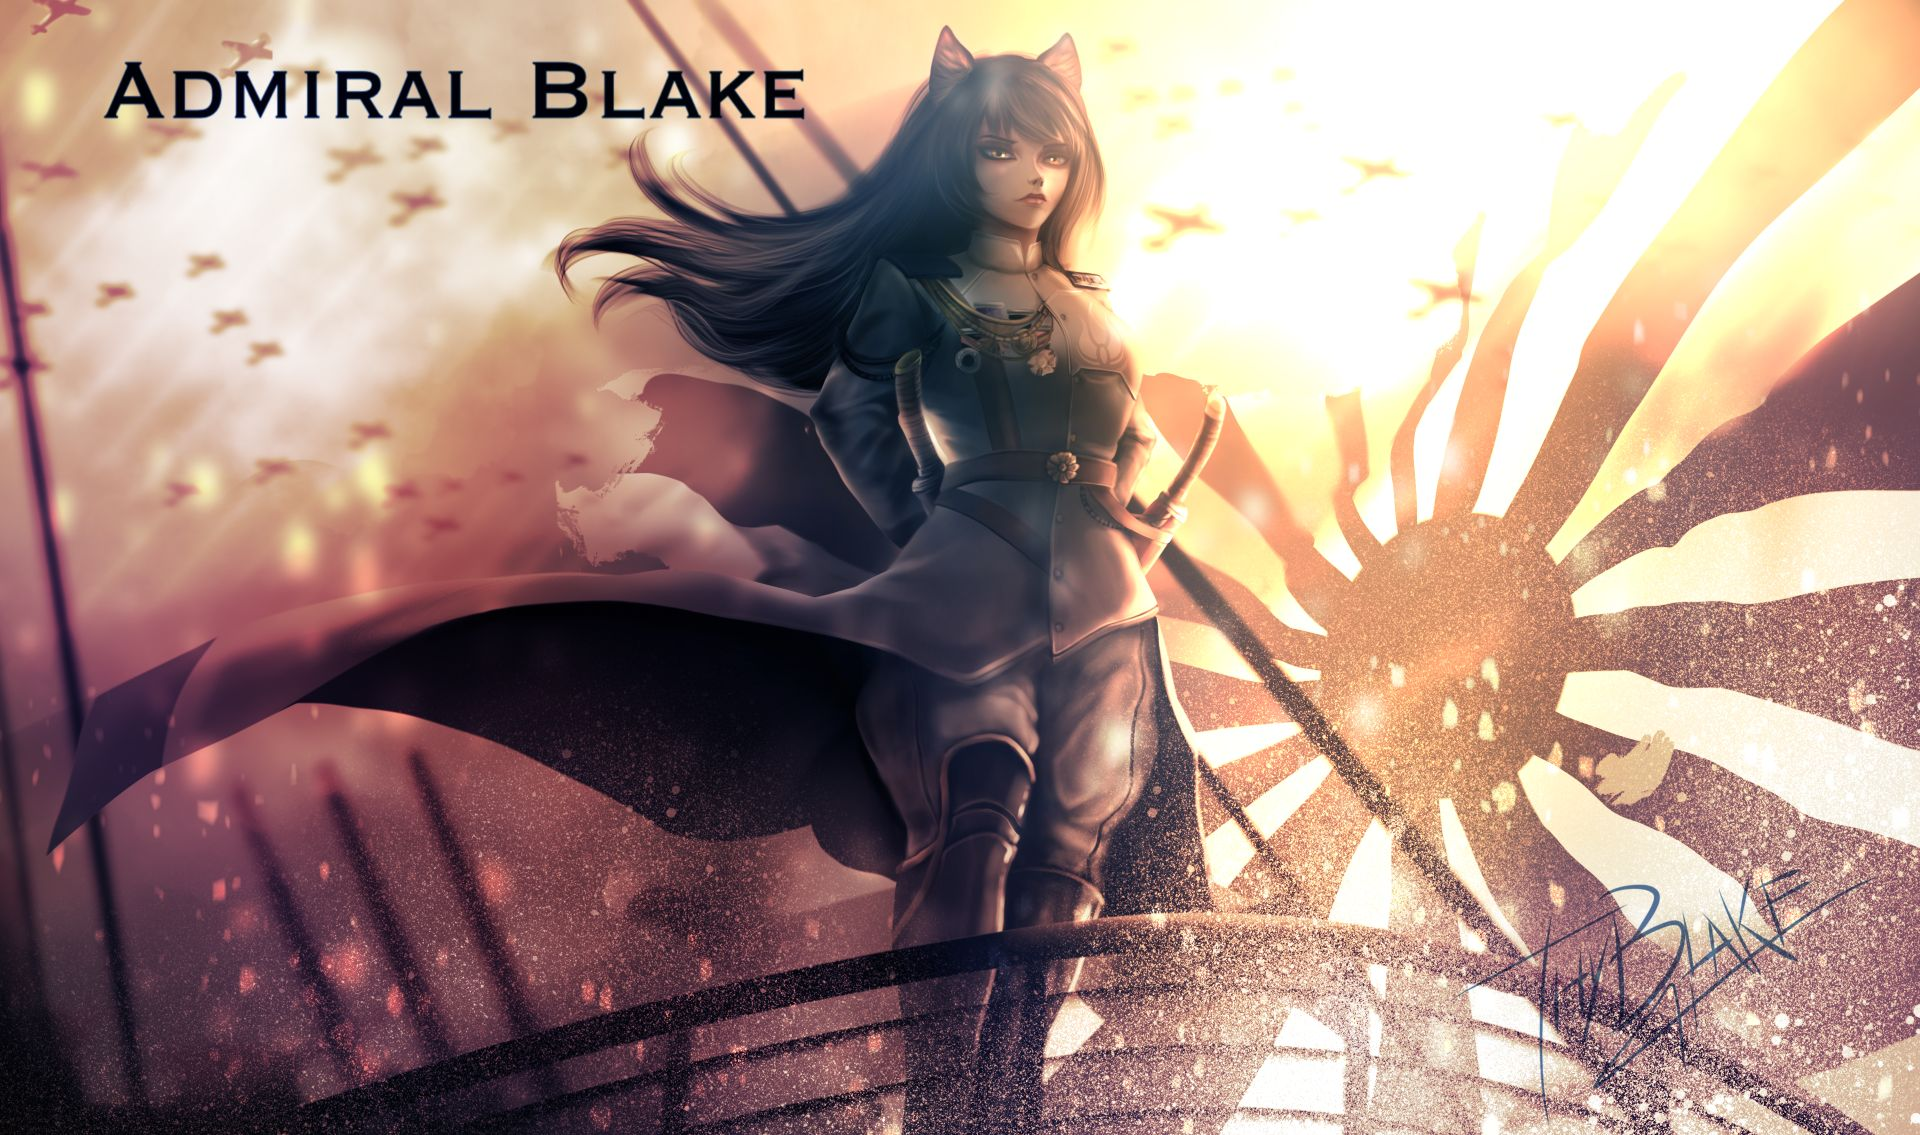 rwby__ww2_nations__japan___blake_by_thyblake_dcctc6c.jpg